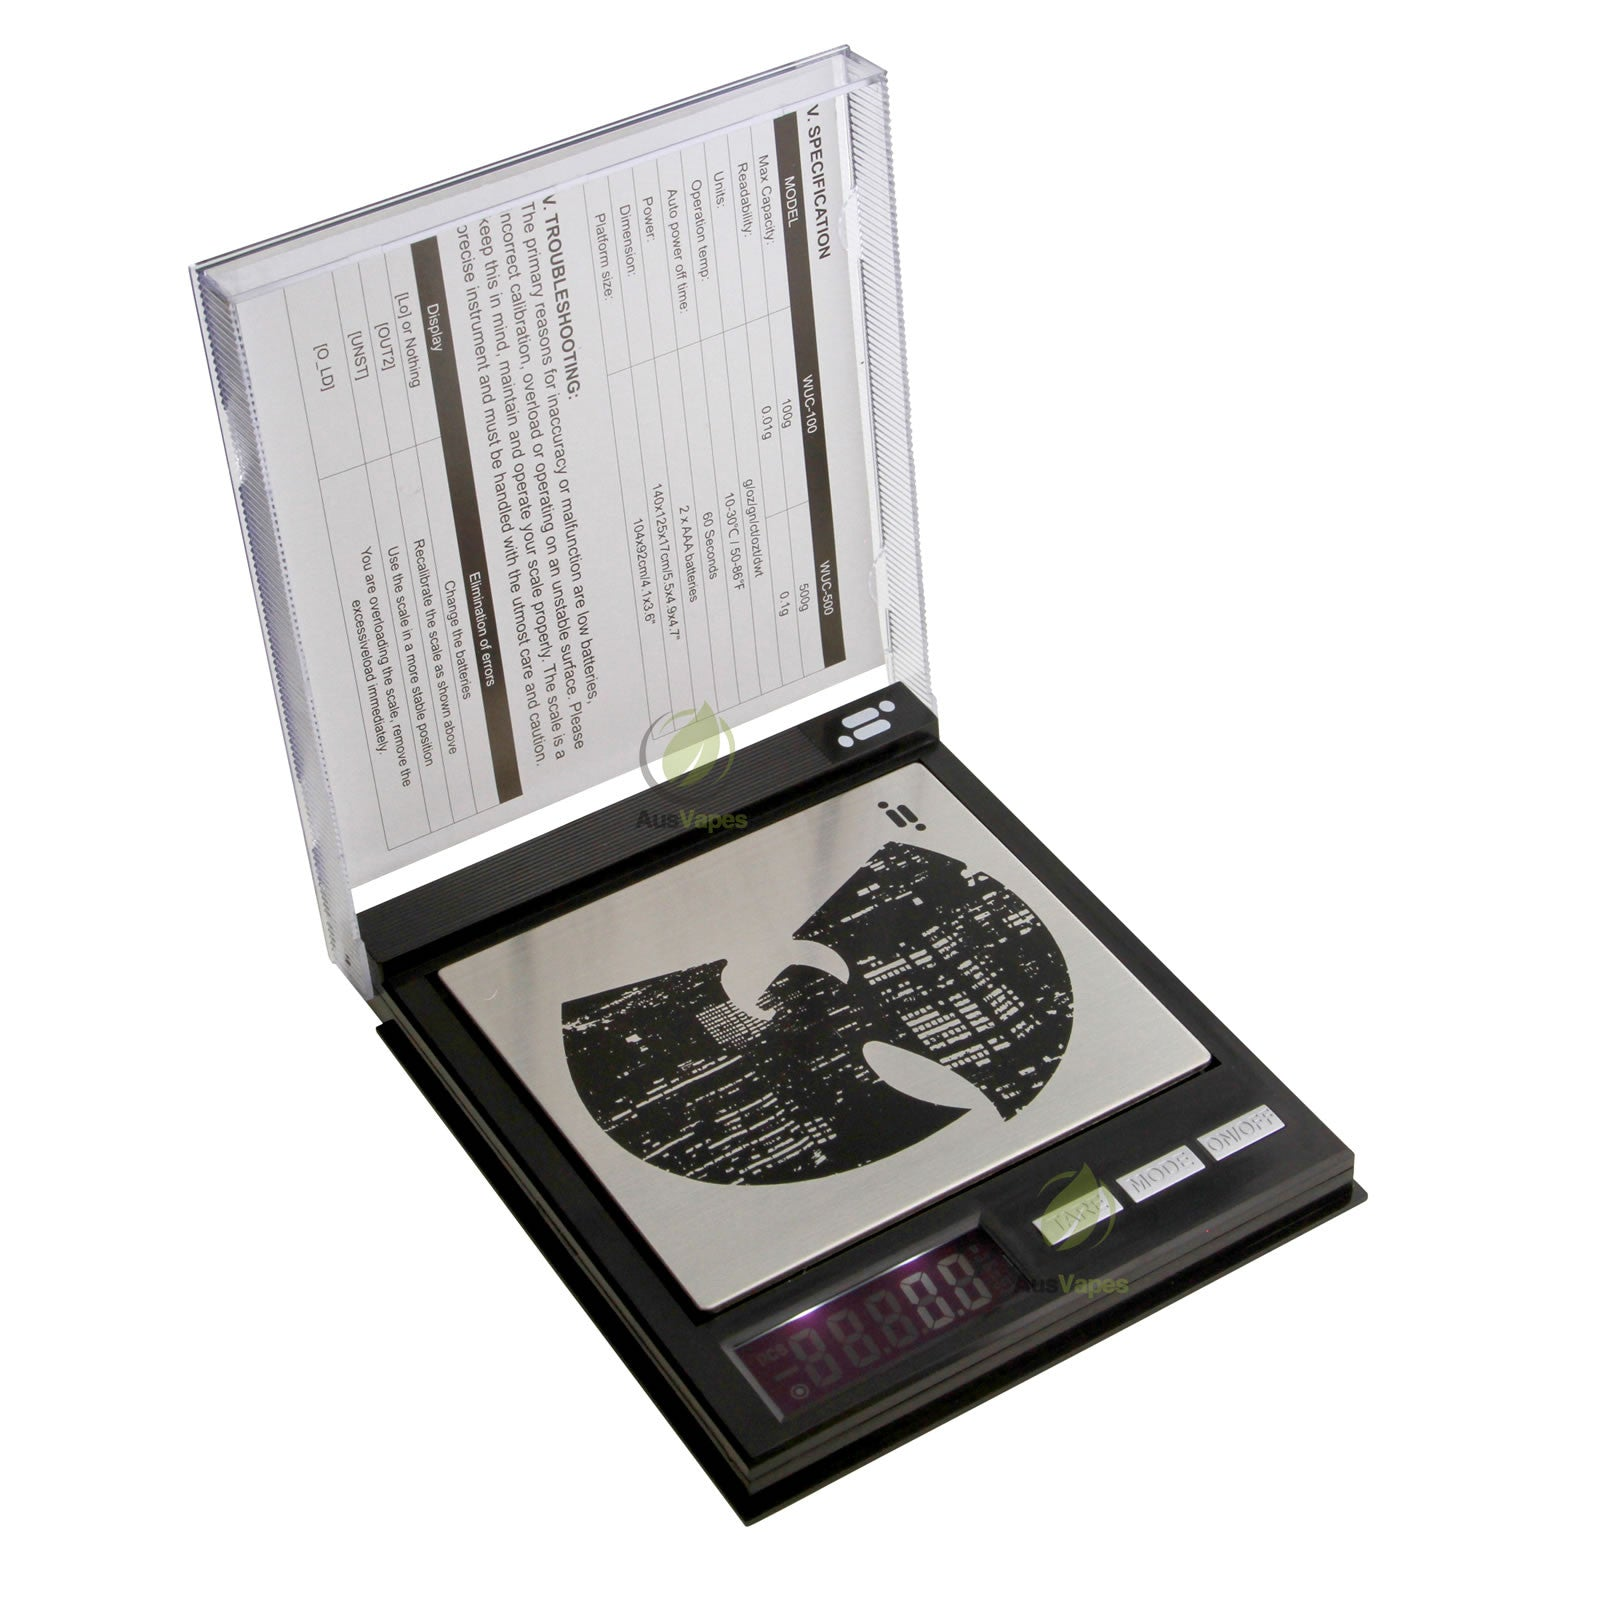 DISCONTINUED Infyniti Wu-Tang Clan CD Digital Scale 100g x 0.01g